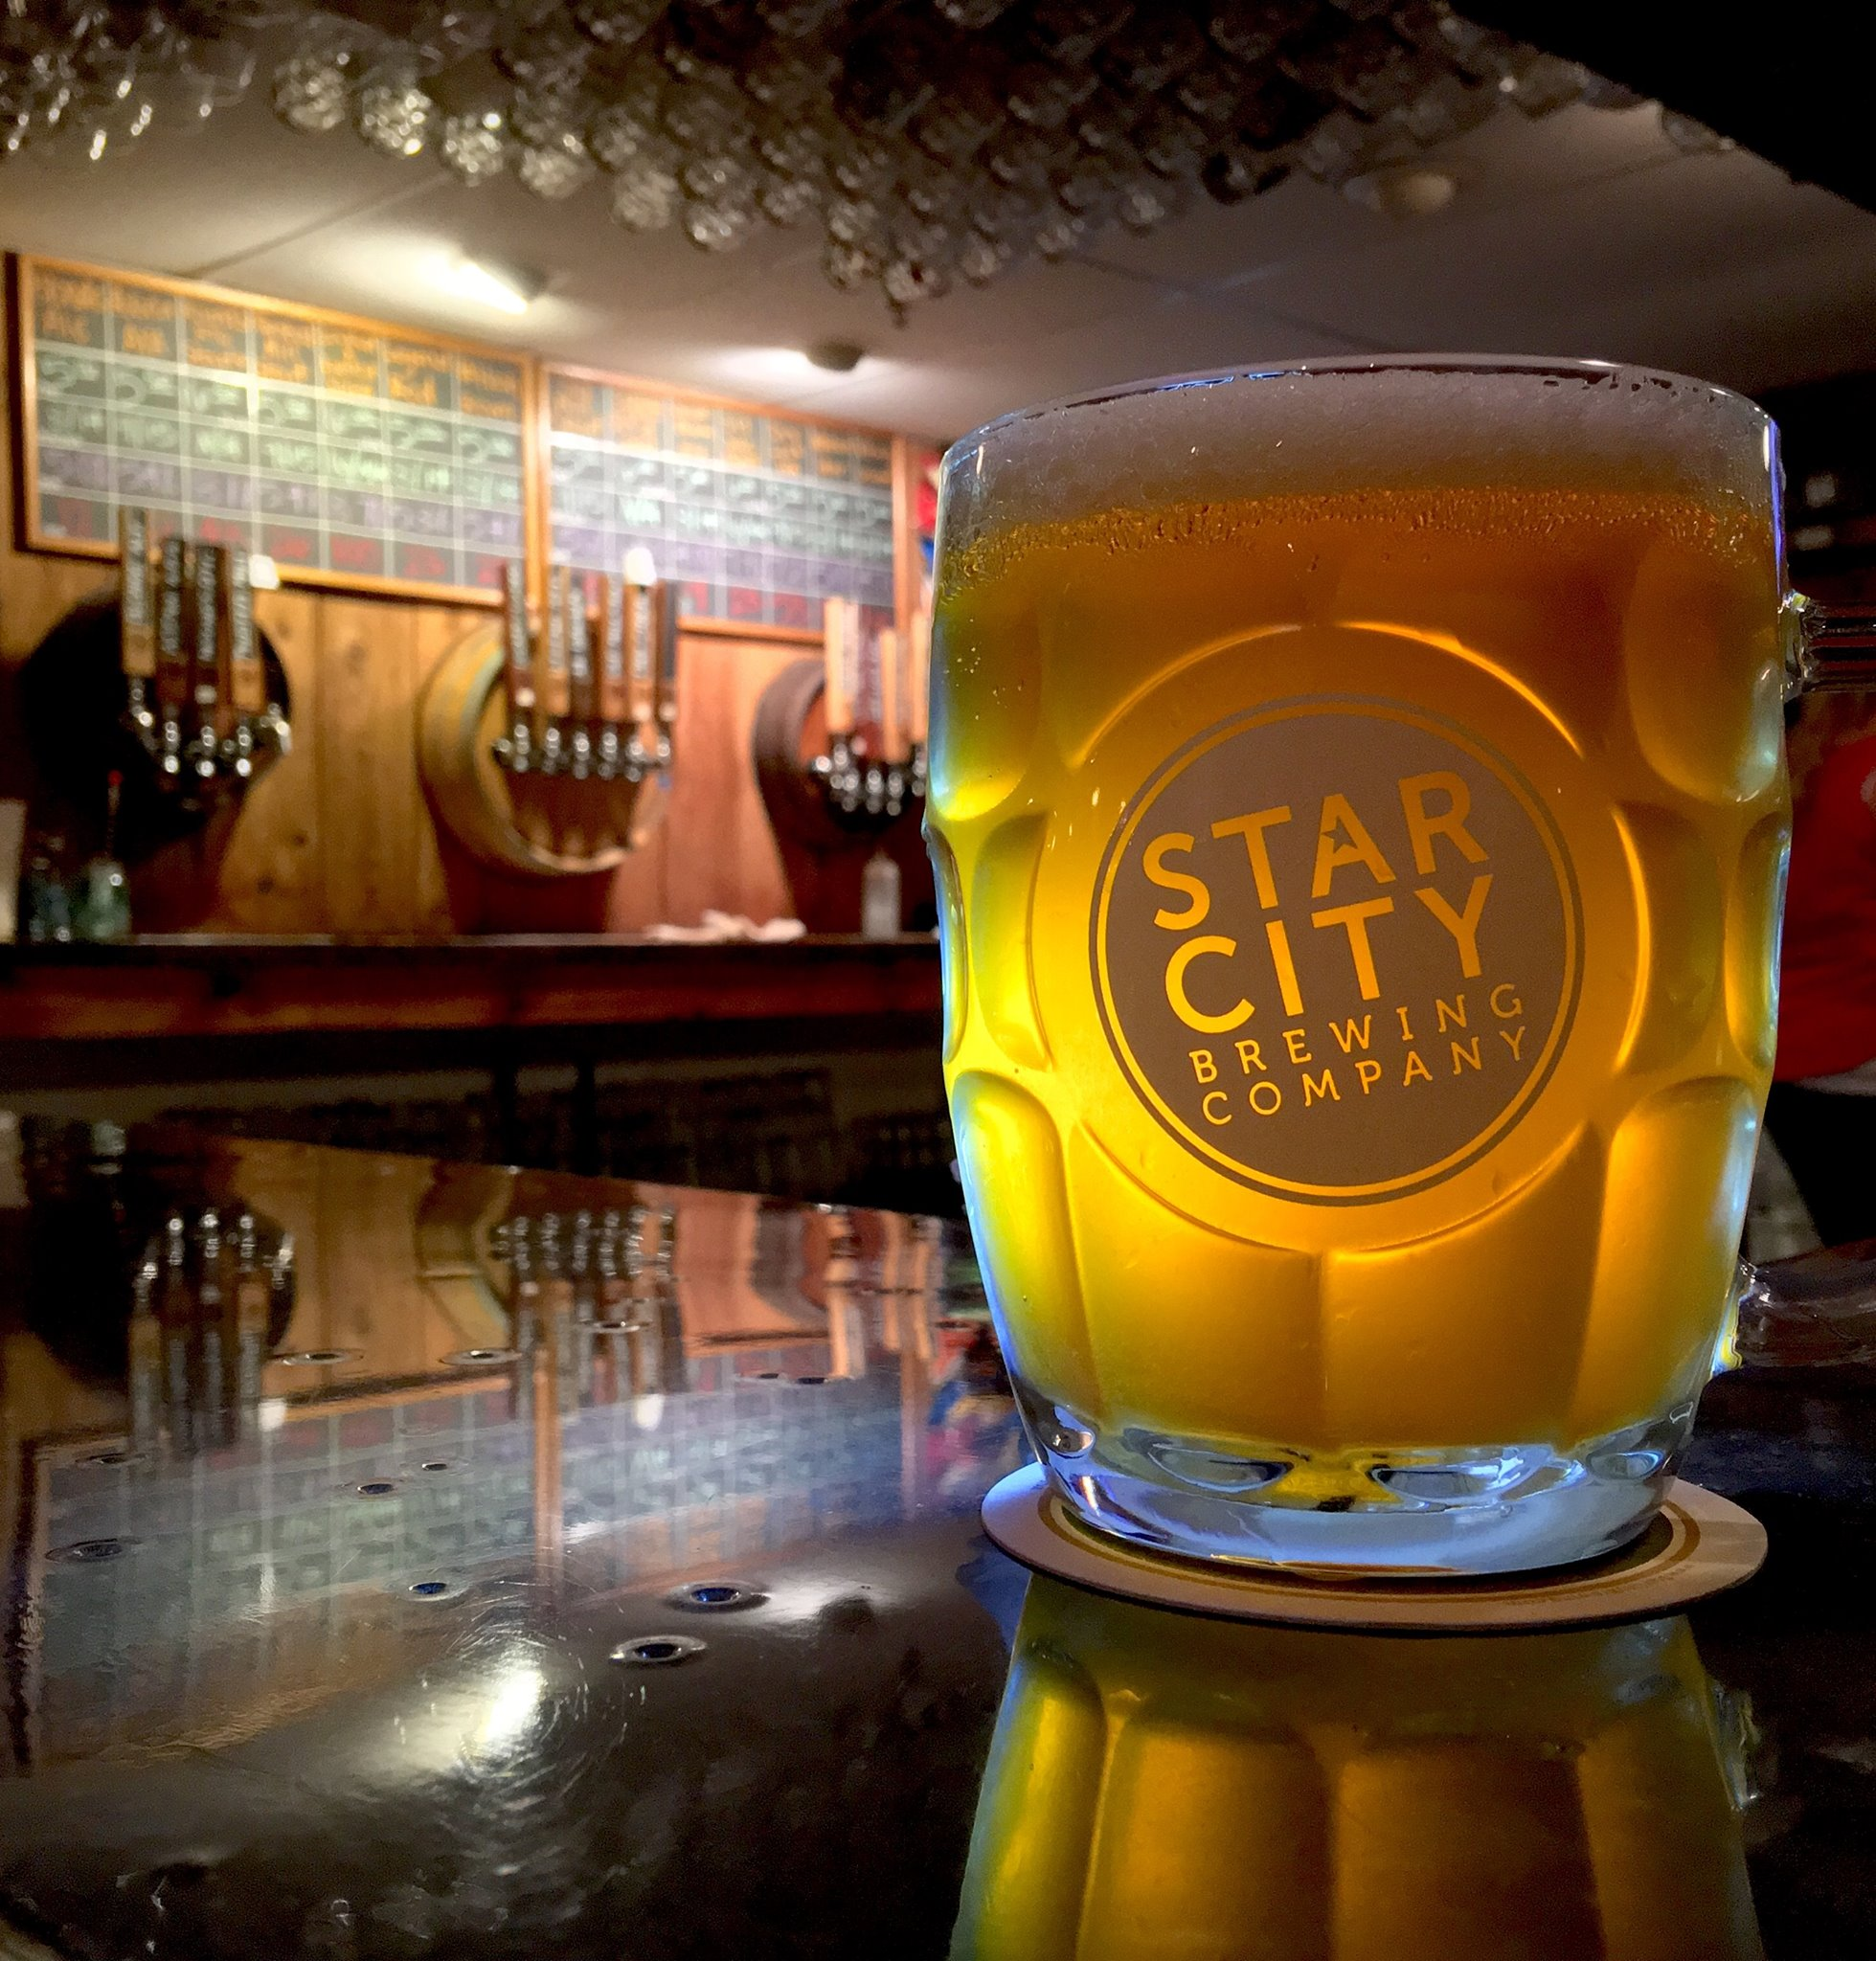 Star City Brewing Company - Miamisburg